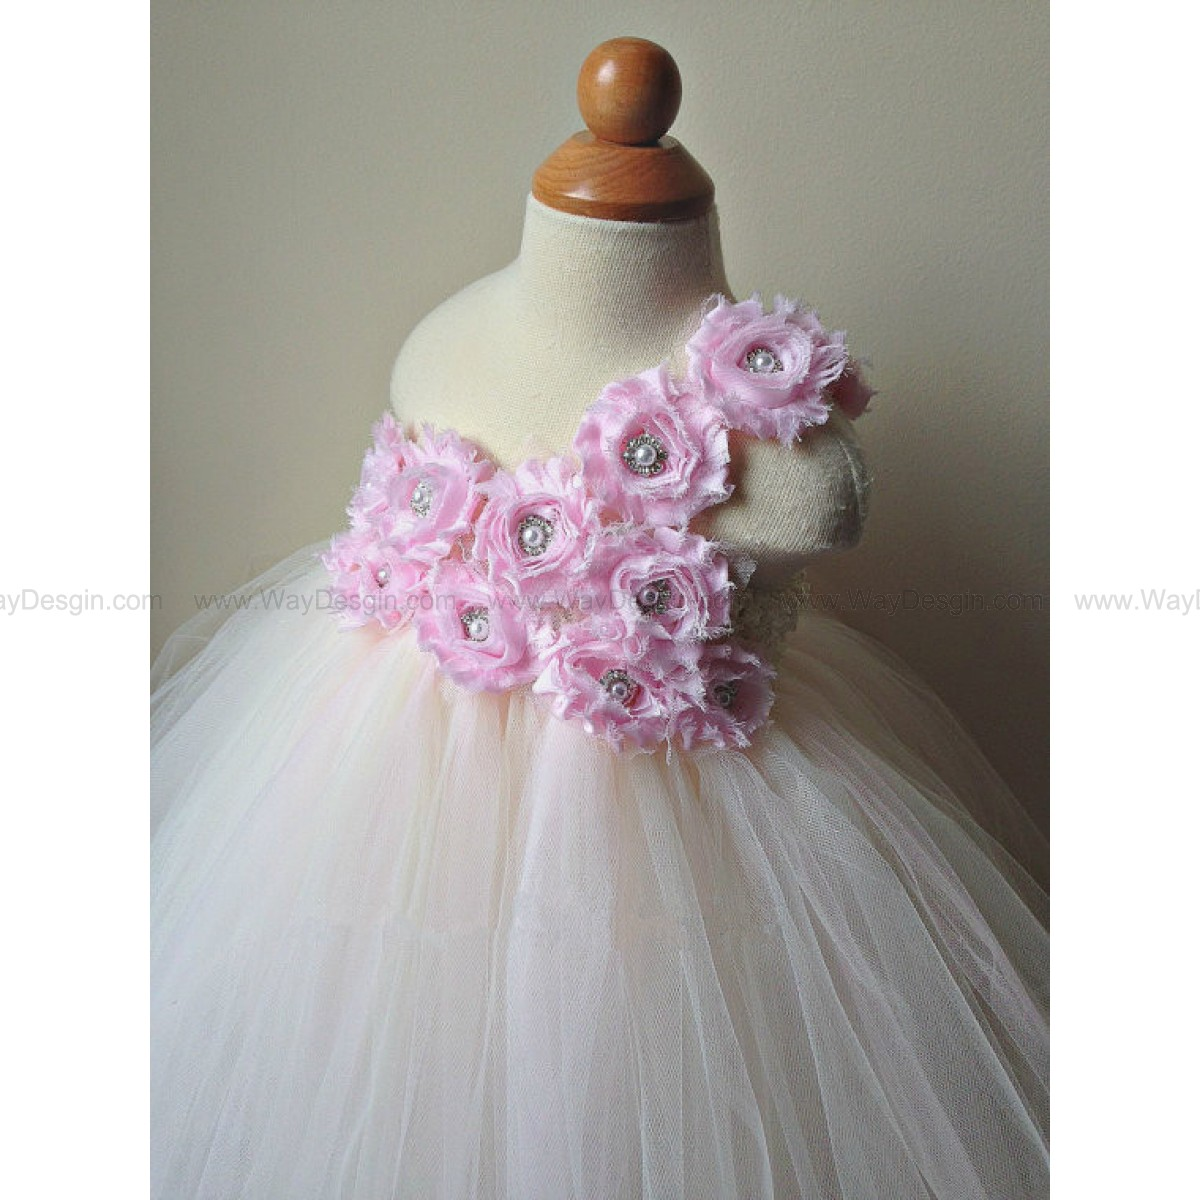 Flower girl dress ivory and rosette tutu dress, chiffton roses, baby tutu dress, toddler tutu dress,newborn